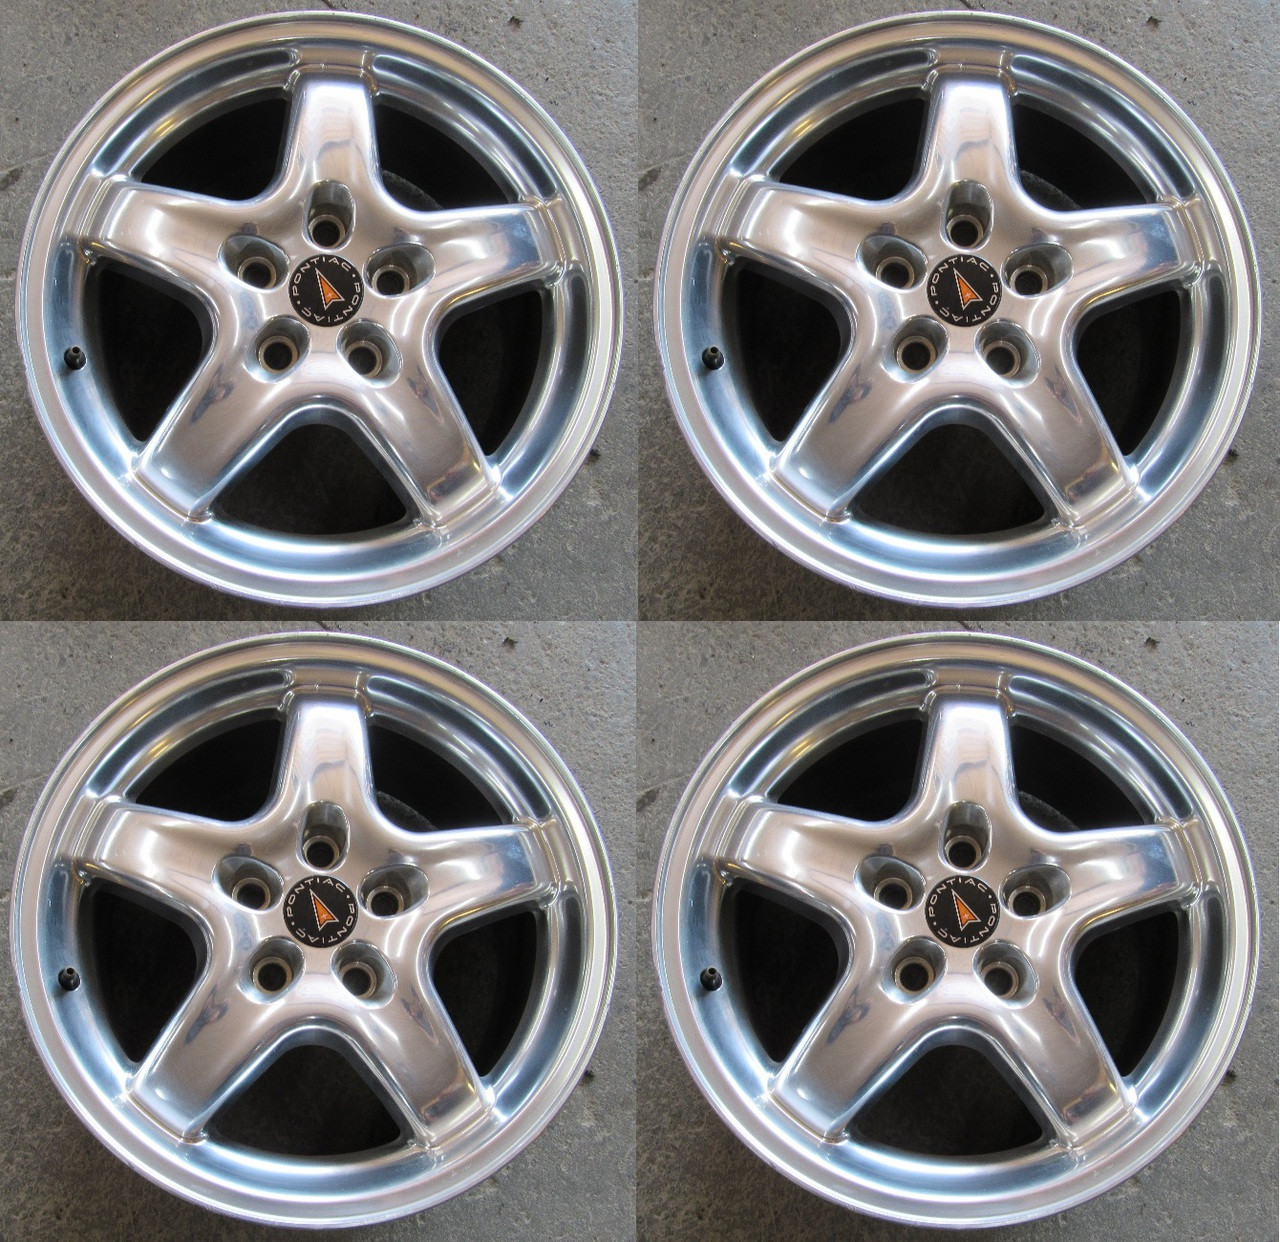 01 02 Trans Am Ws6 17x9 Used Polished Wheels Set Of 4 Front Rear